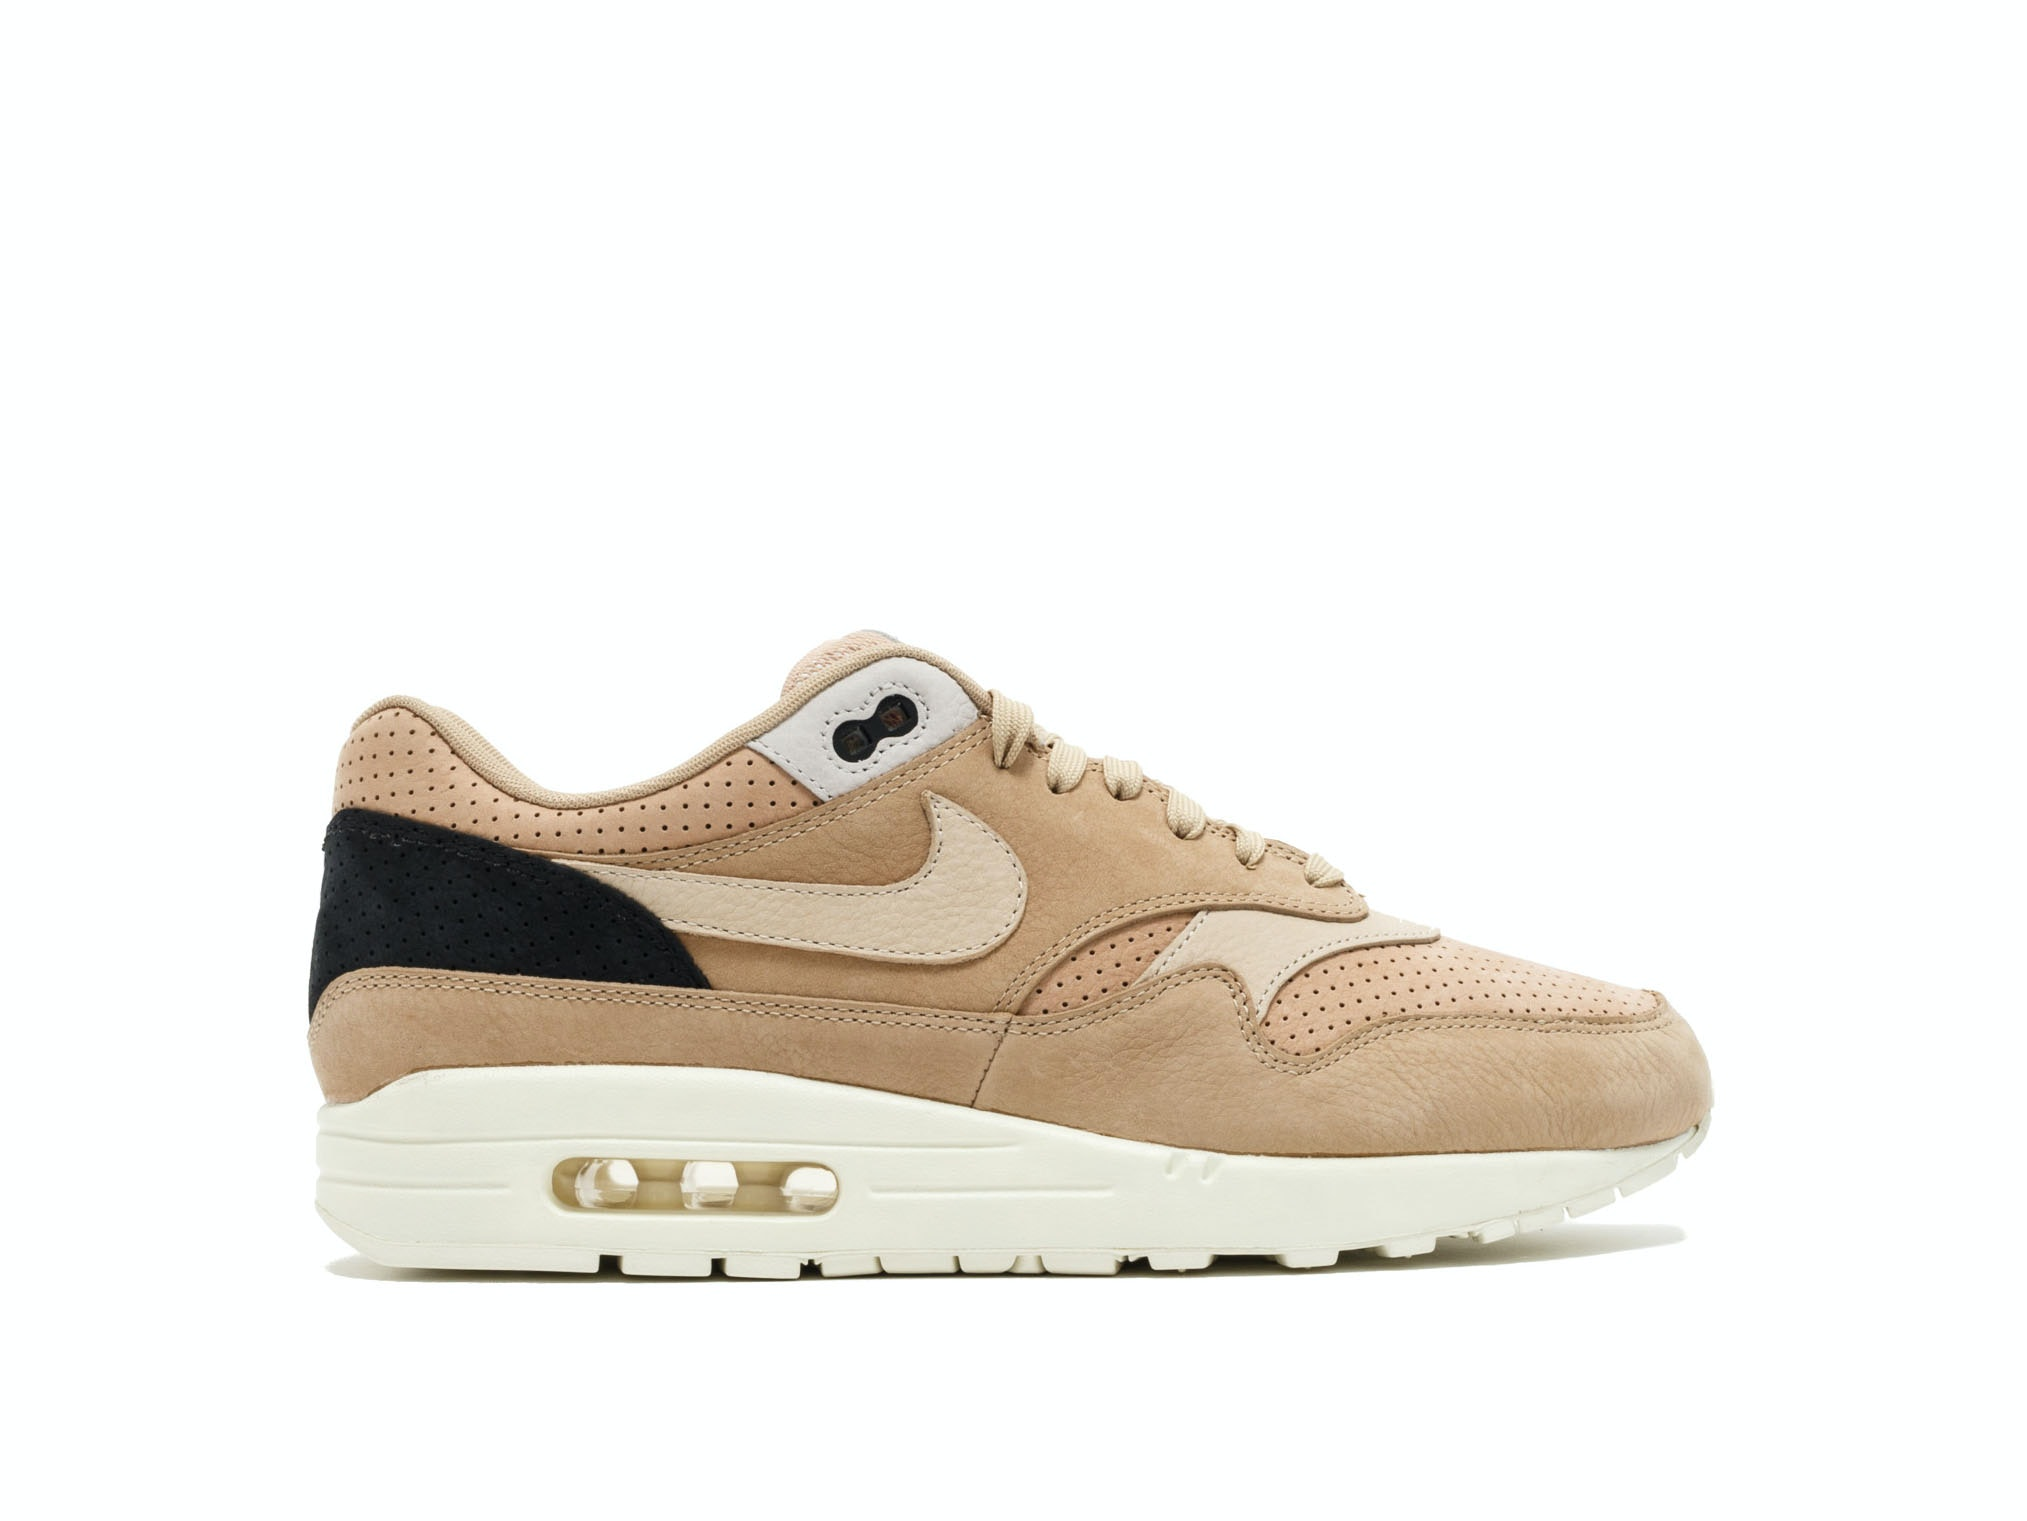 best sneakers 9805e c02dd NikeLab Air Max 1 Pinnacle Mushroom. 100% AuthenticSold ...